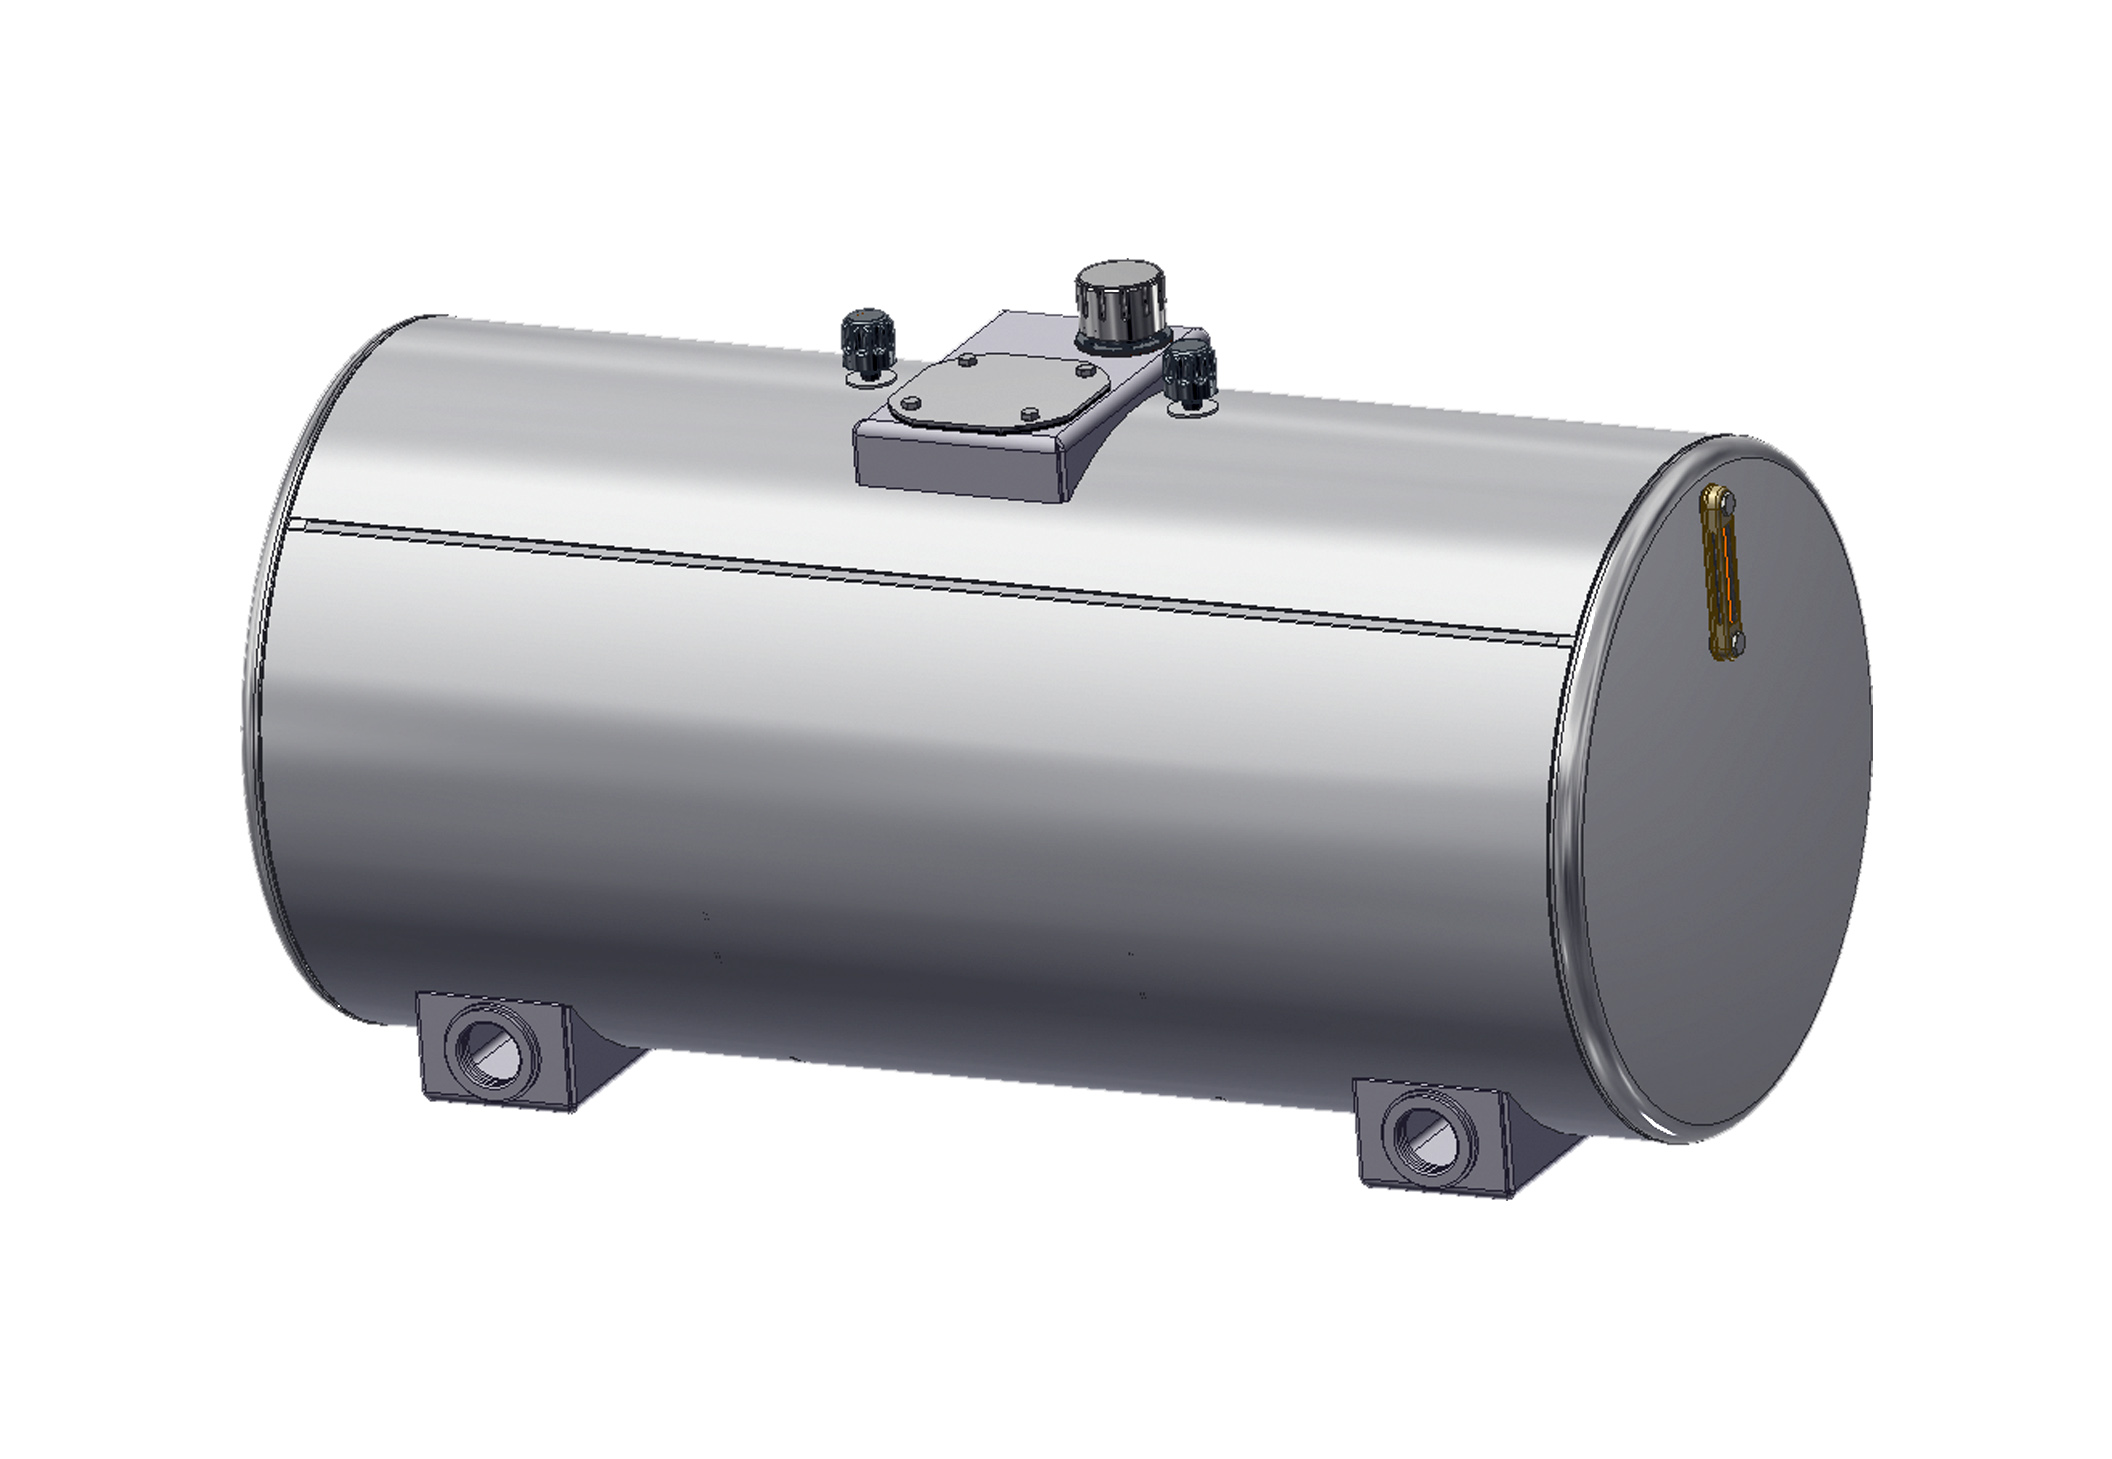 Saddlemount-Tanks - Aluminum-Saddlemount-100-Gallon